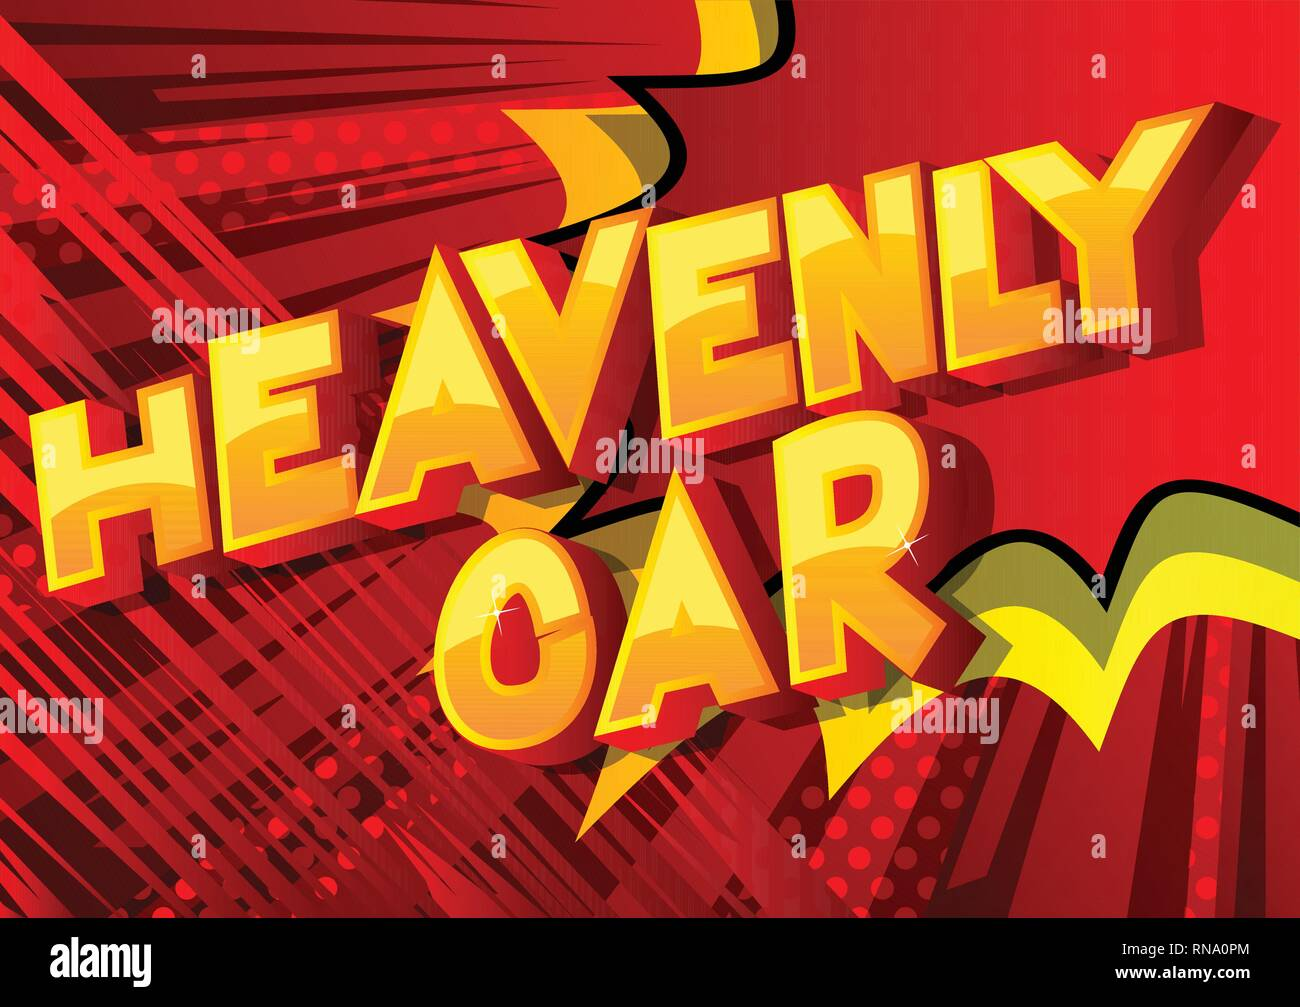 Heavenly Car - Vector illustrated comic book style phrase on abstract background. - Stock Image